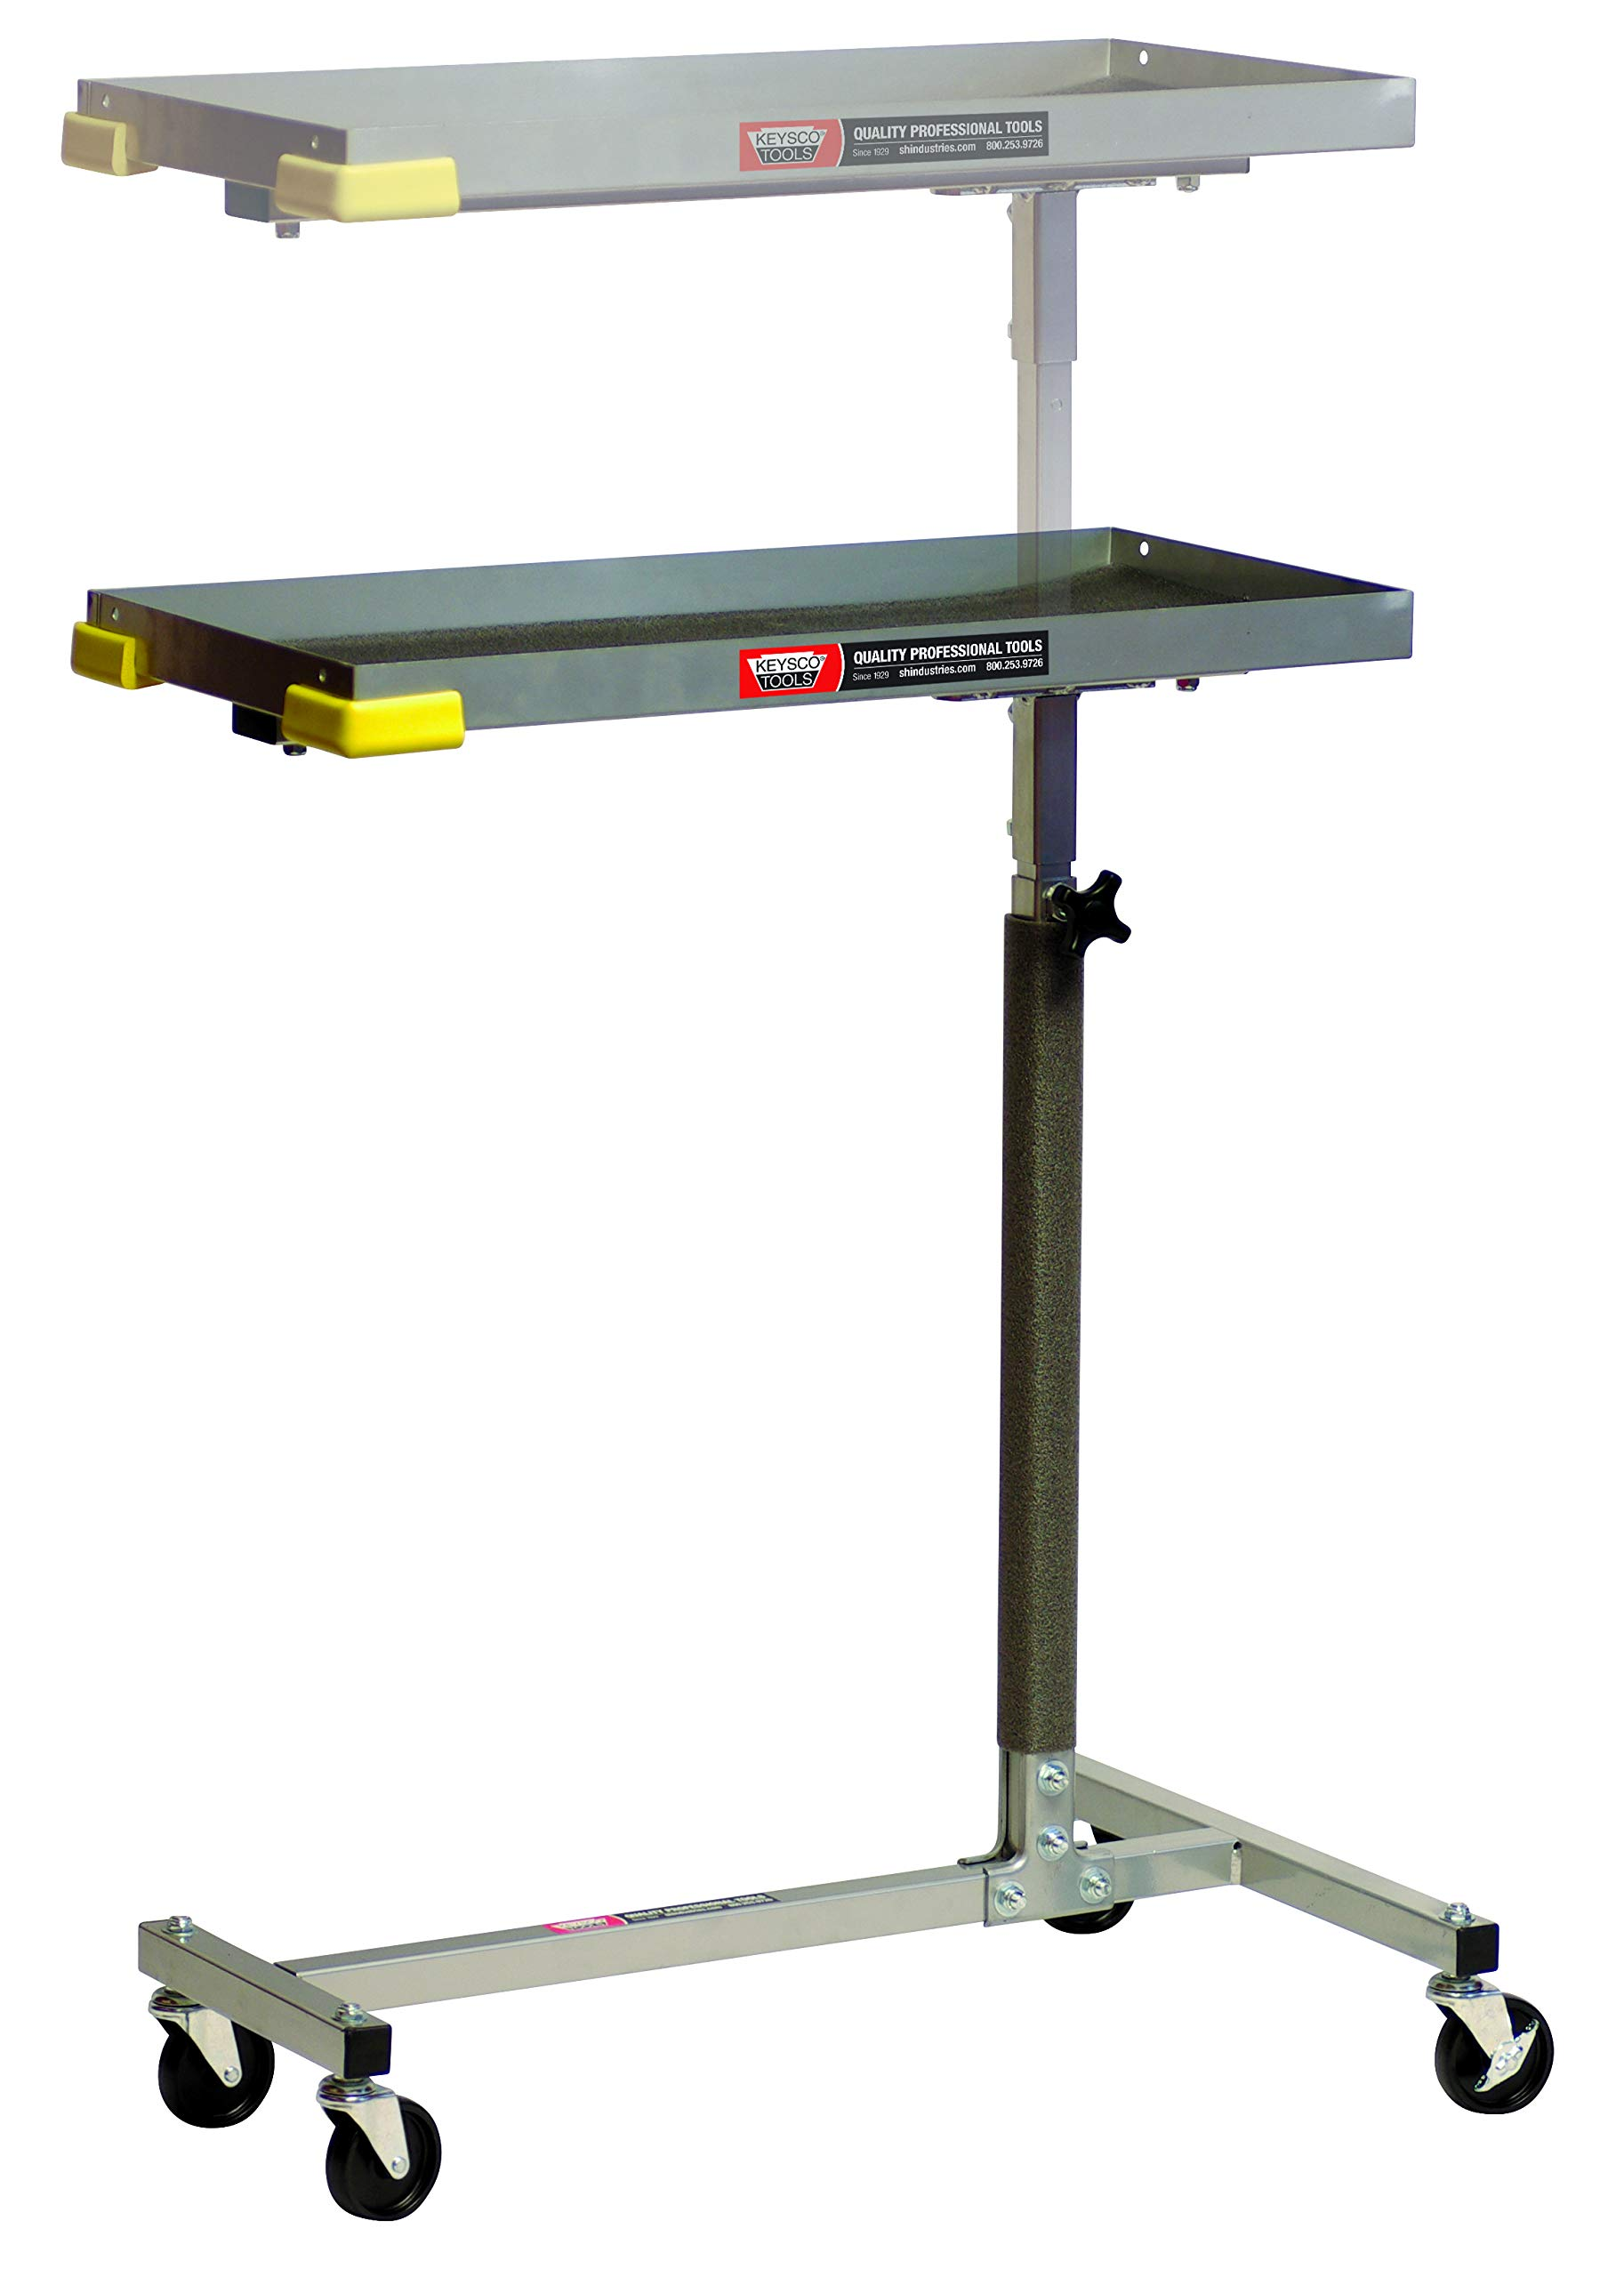 Keysco 78035 Mechanics Mobile Tool Cart (Metal) by KEYSCO (Image #2)